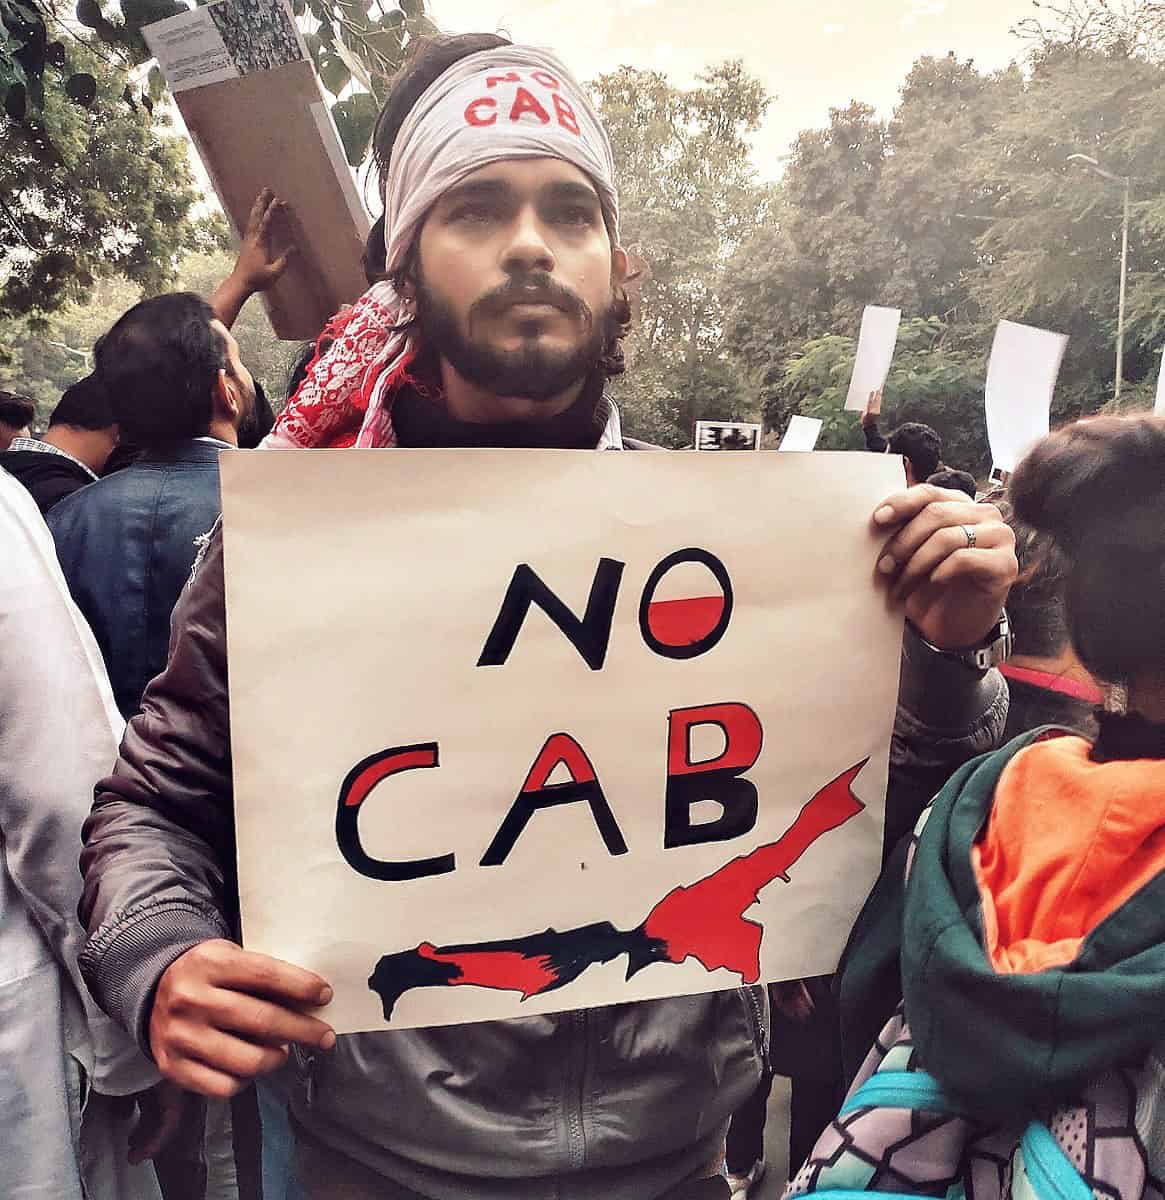 COVID-19: JMI Students Temporarily Suspend Protest Against CAA